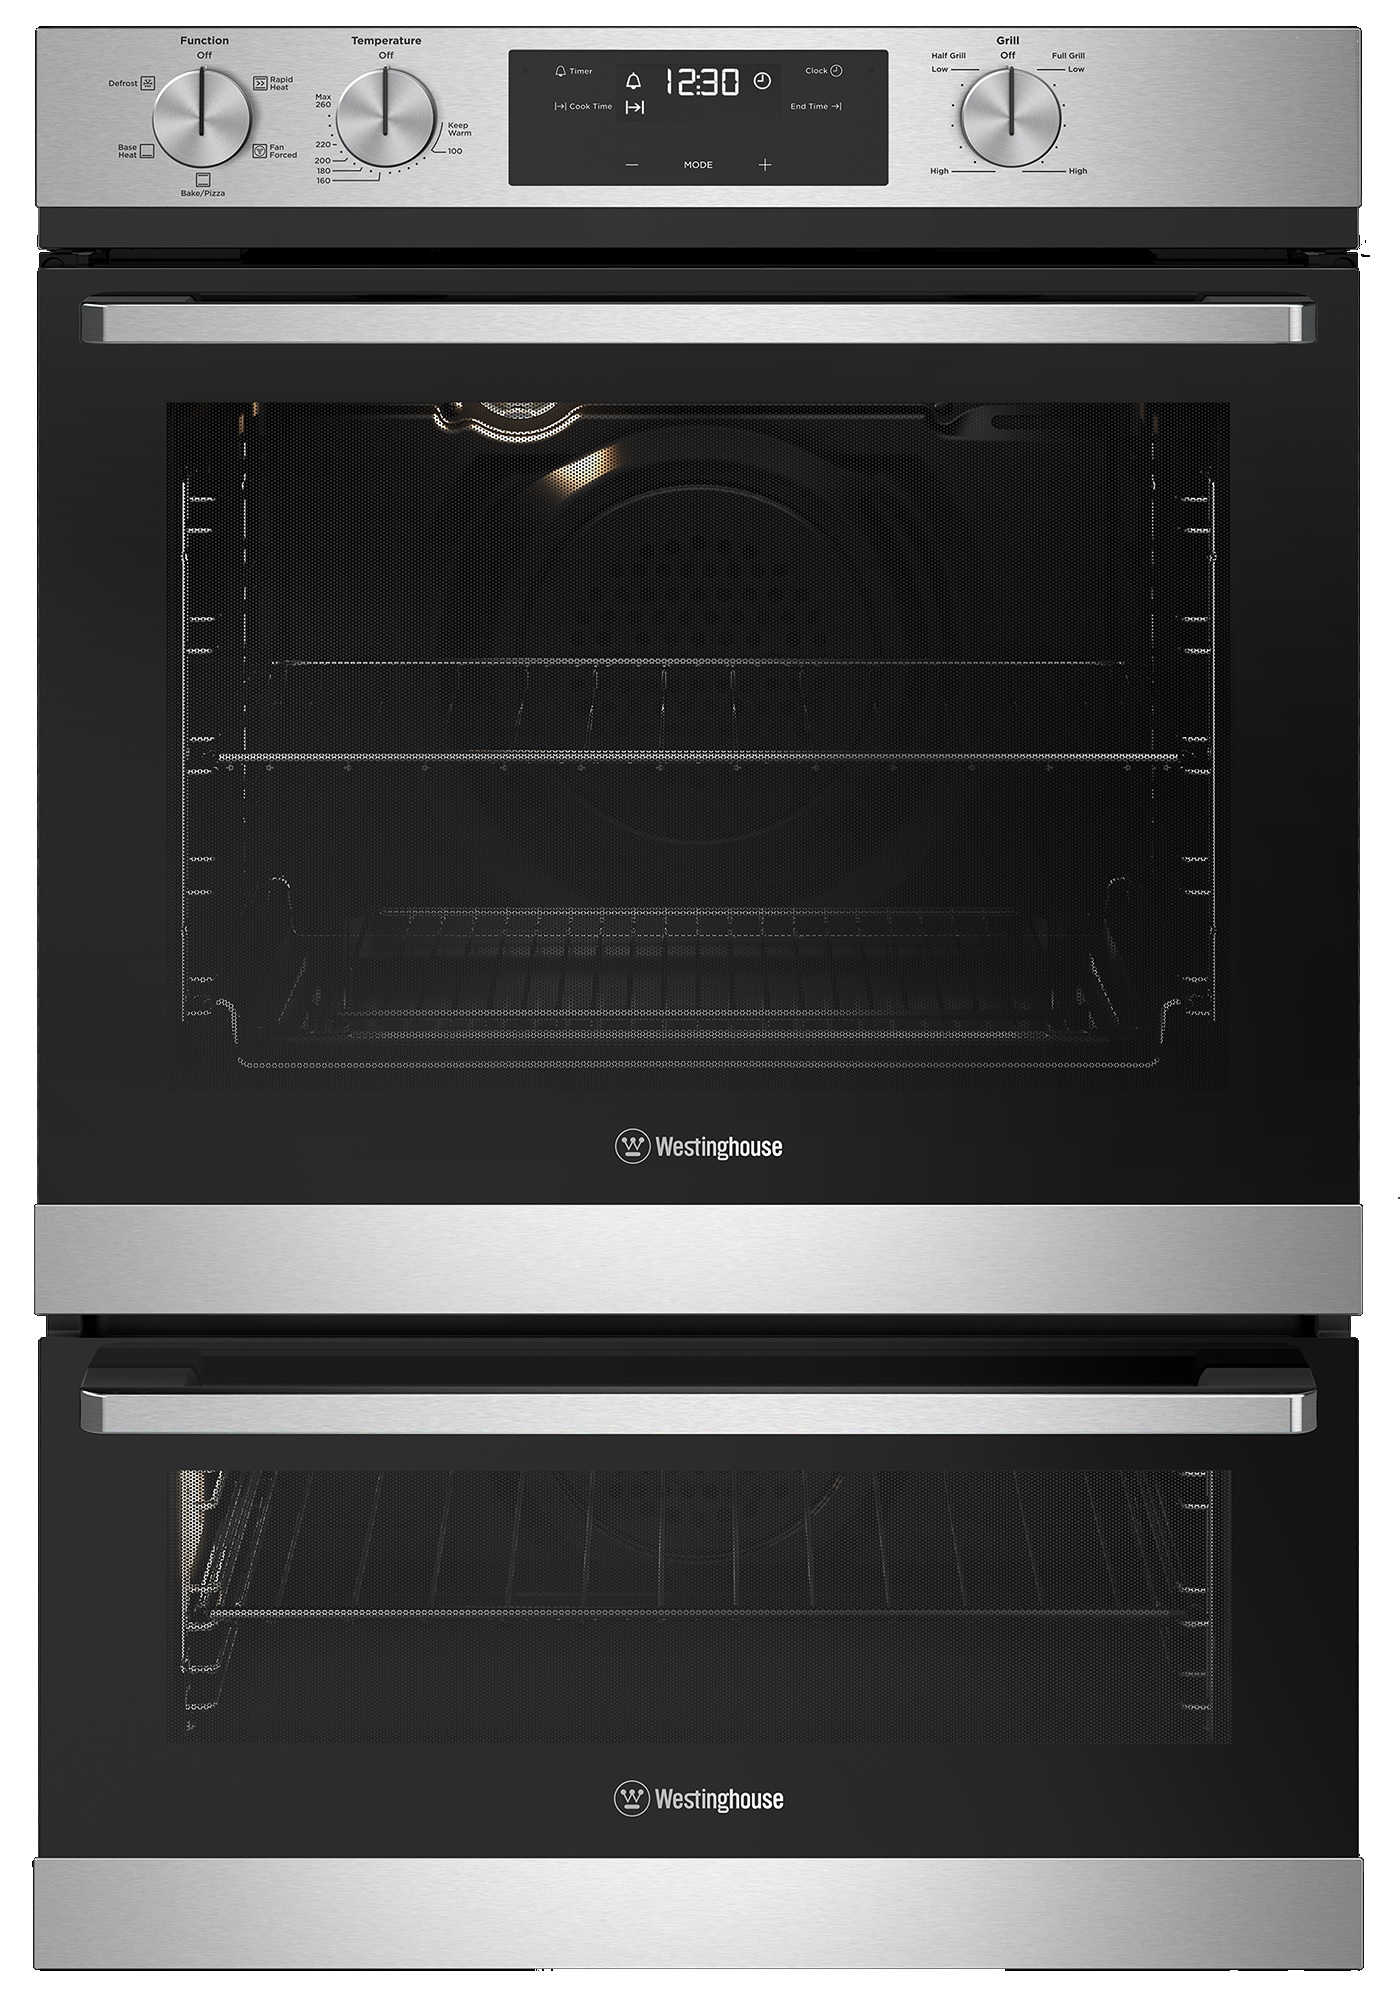 Westinghouse WVE665SC Built-In Oven